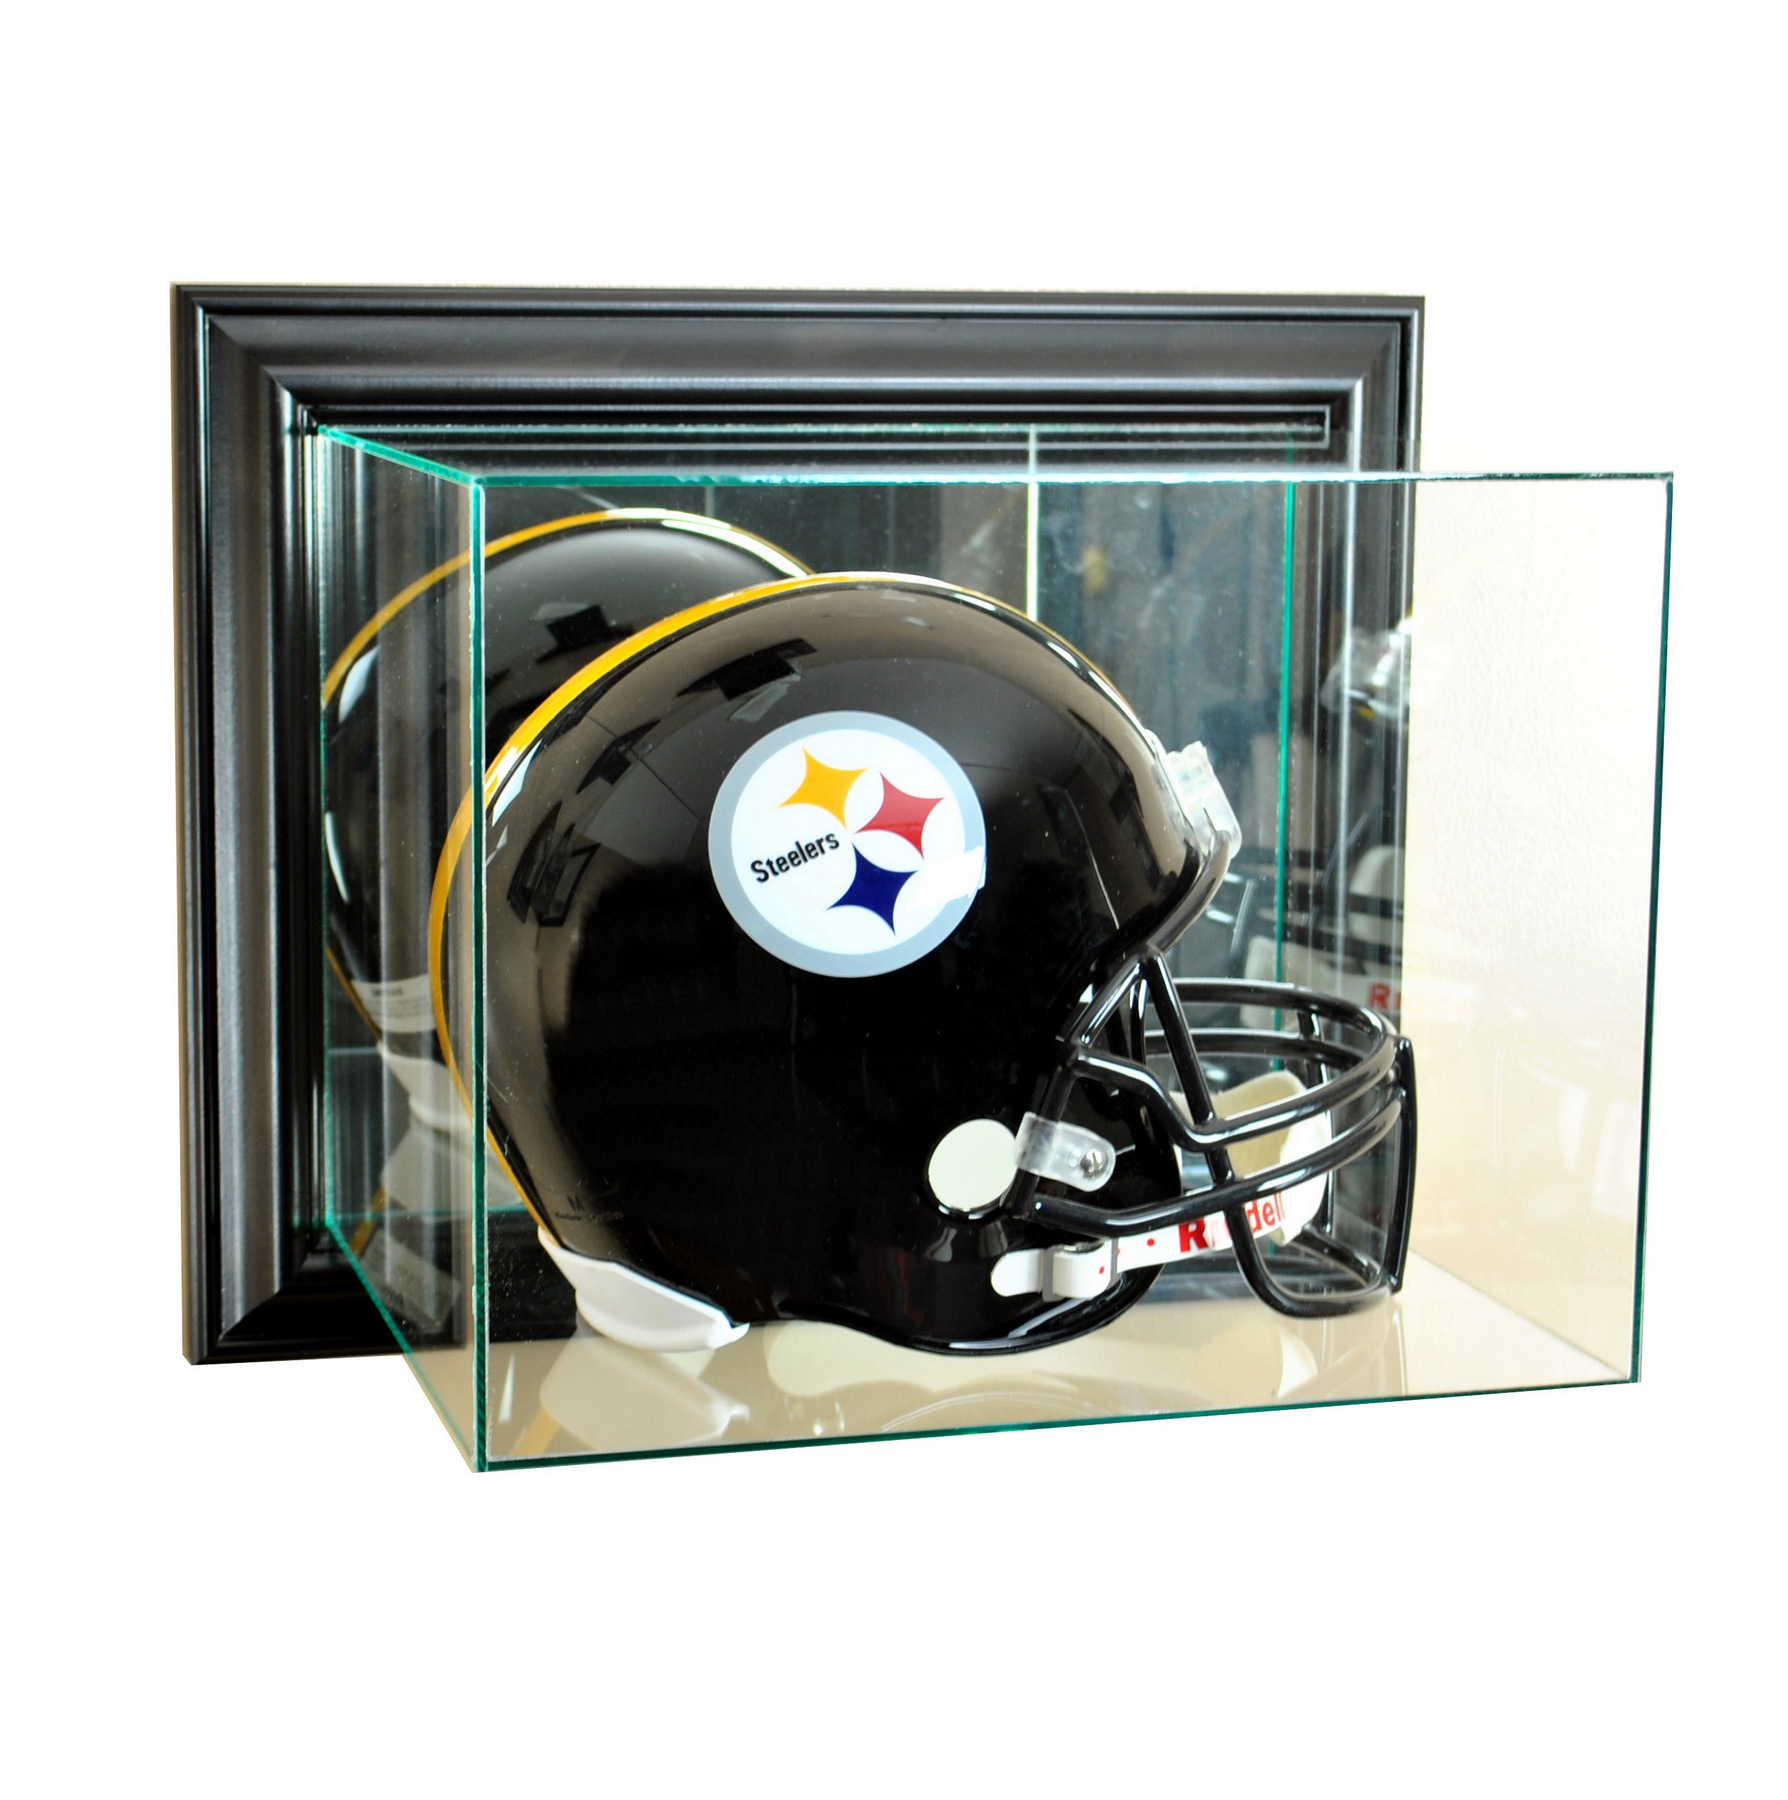 WALL MOUNT UV REAL GLASS FULL SIZE FOOTBALL HELMET DISPLAY ...